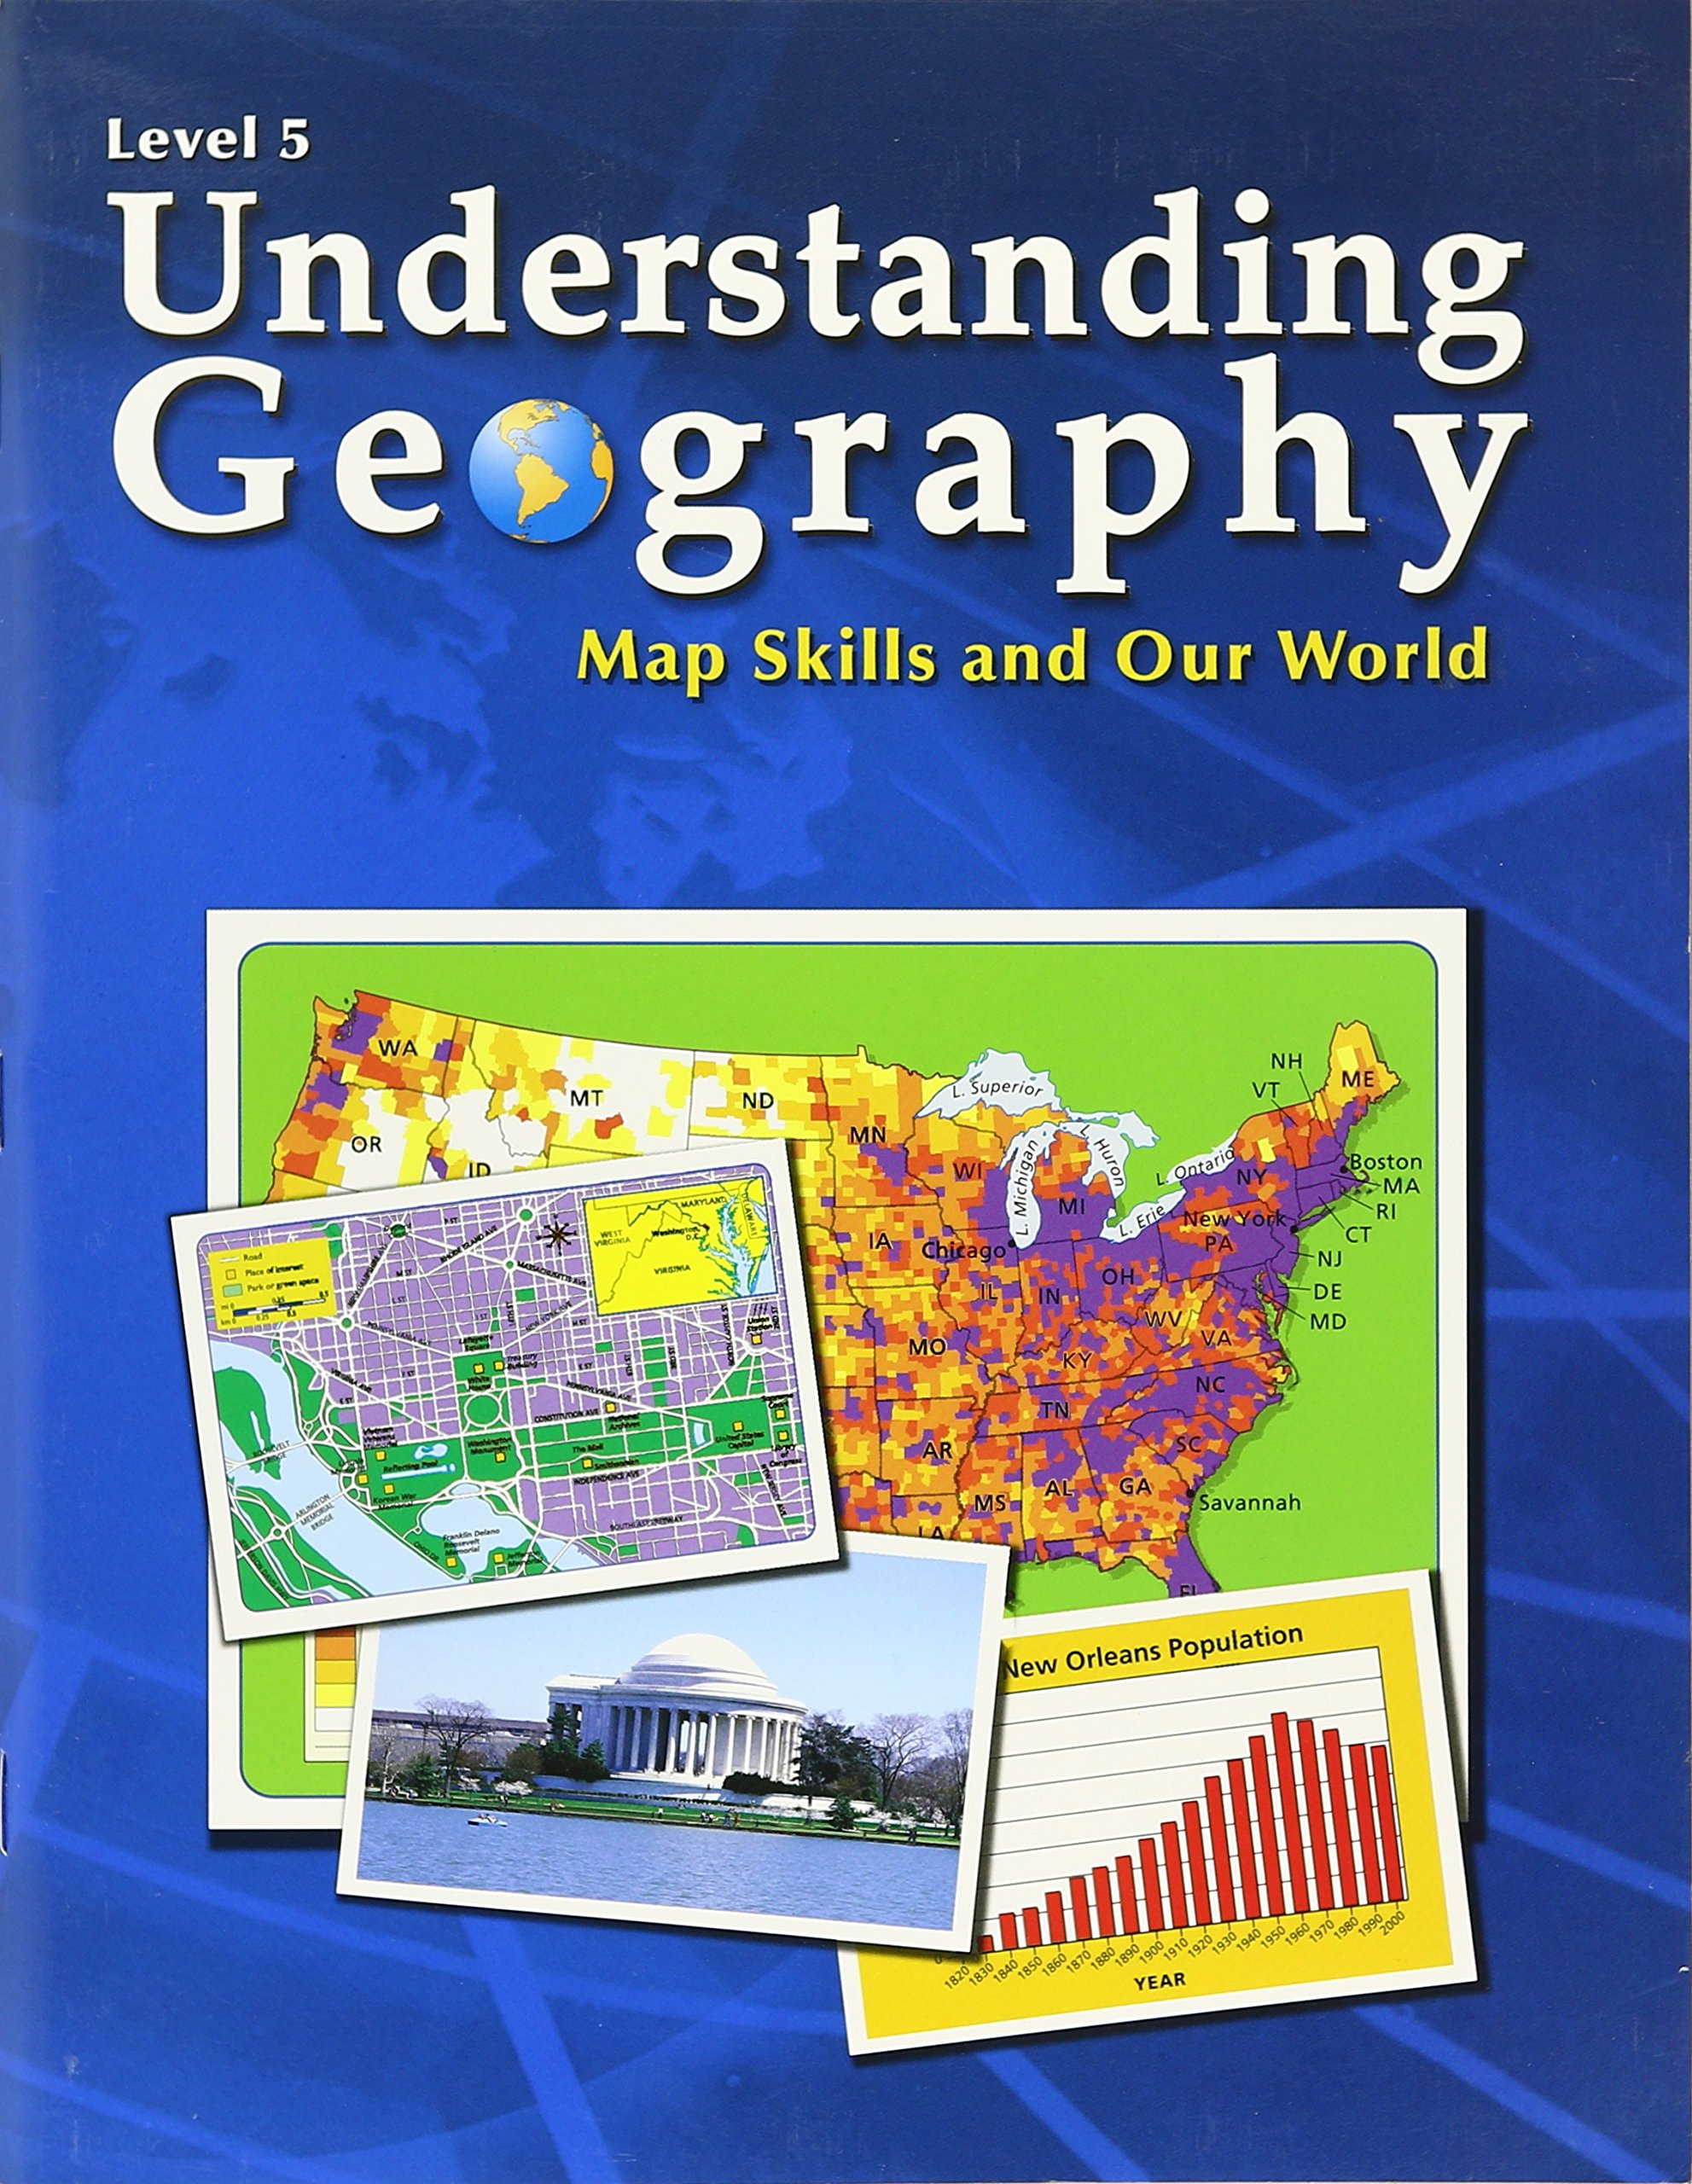 Understanding Geography, Map Skills and Our World, Level 5 (Understanding Geography, Level 5) PDF